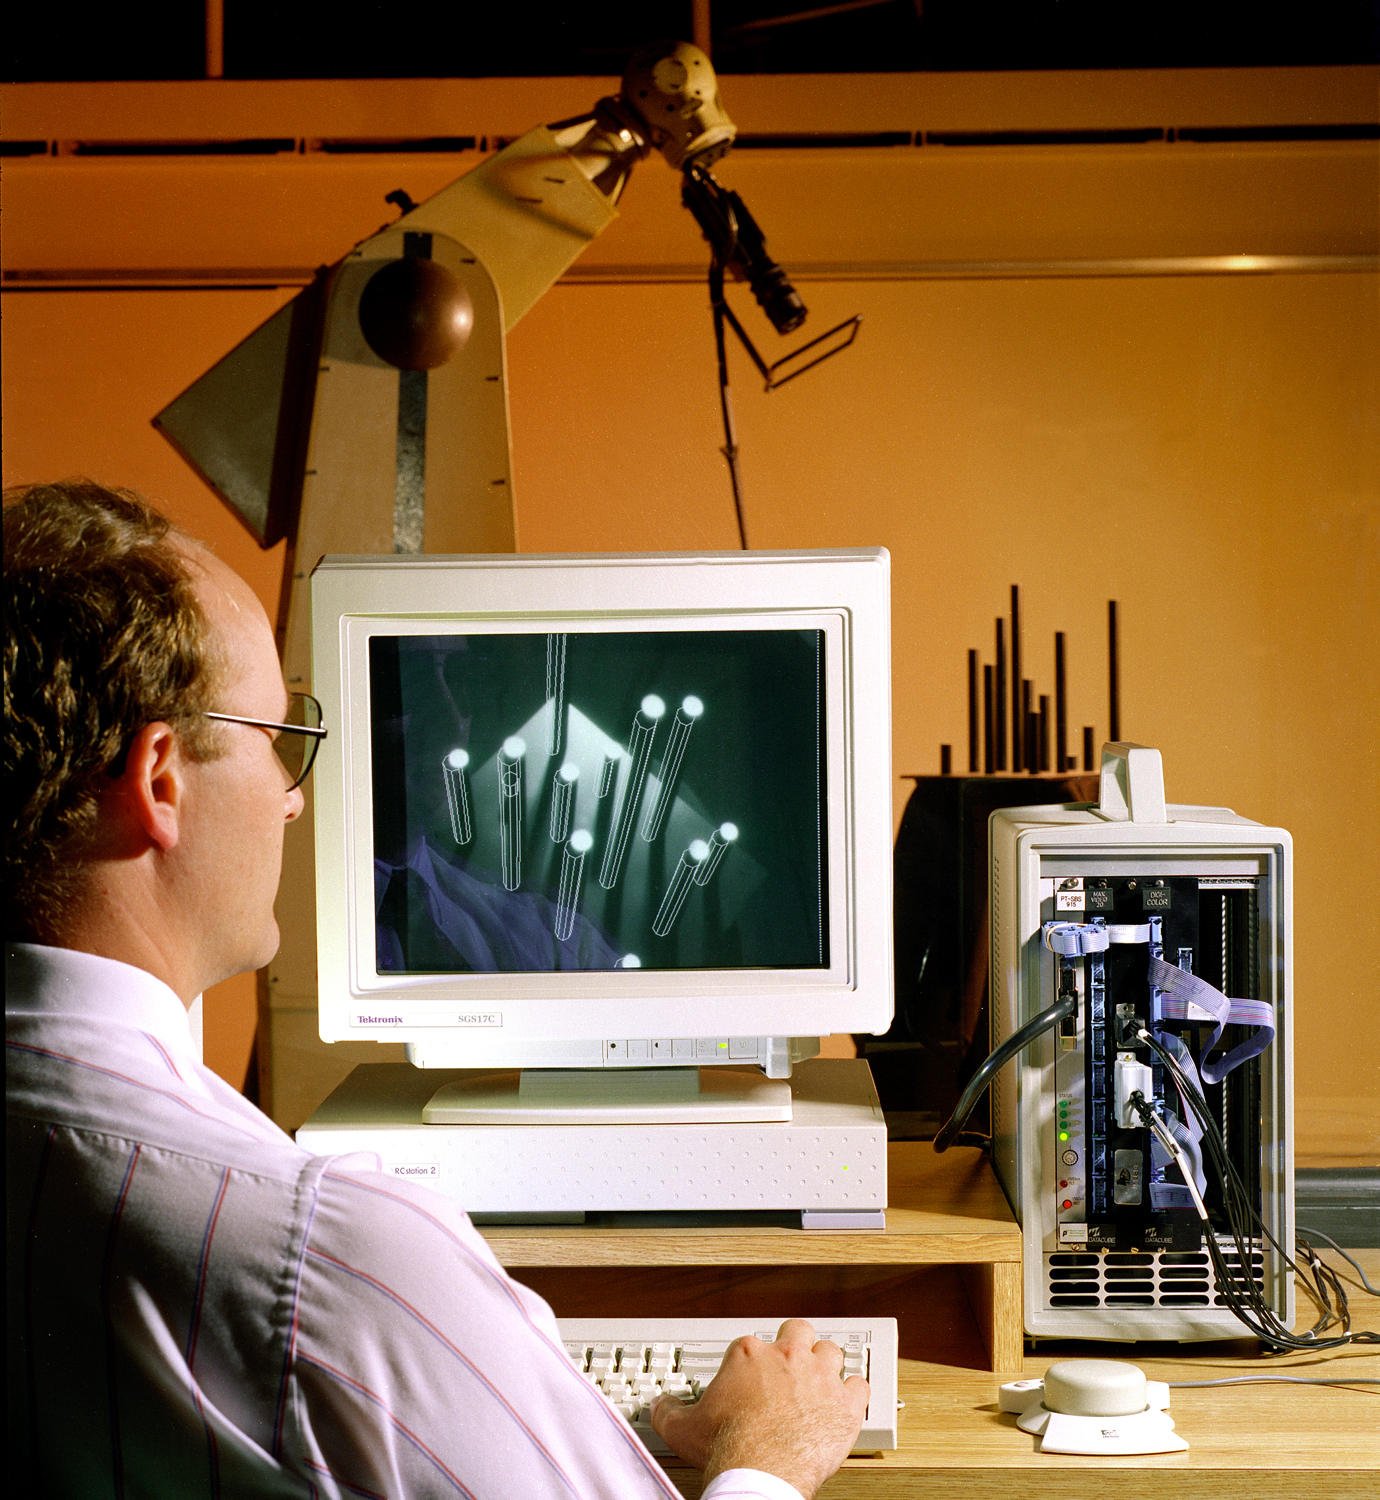 Man sitting in front of computer with robotic arm reaching down